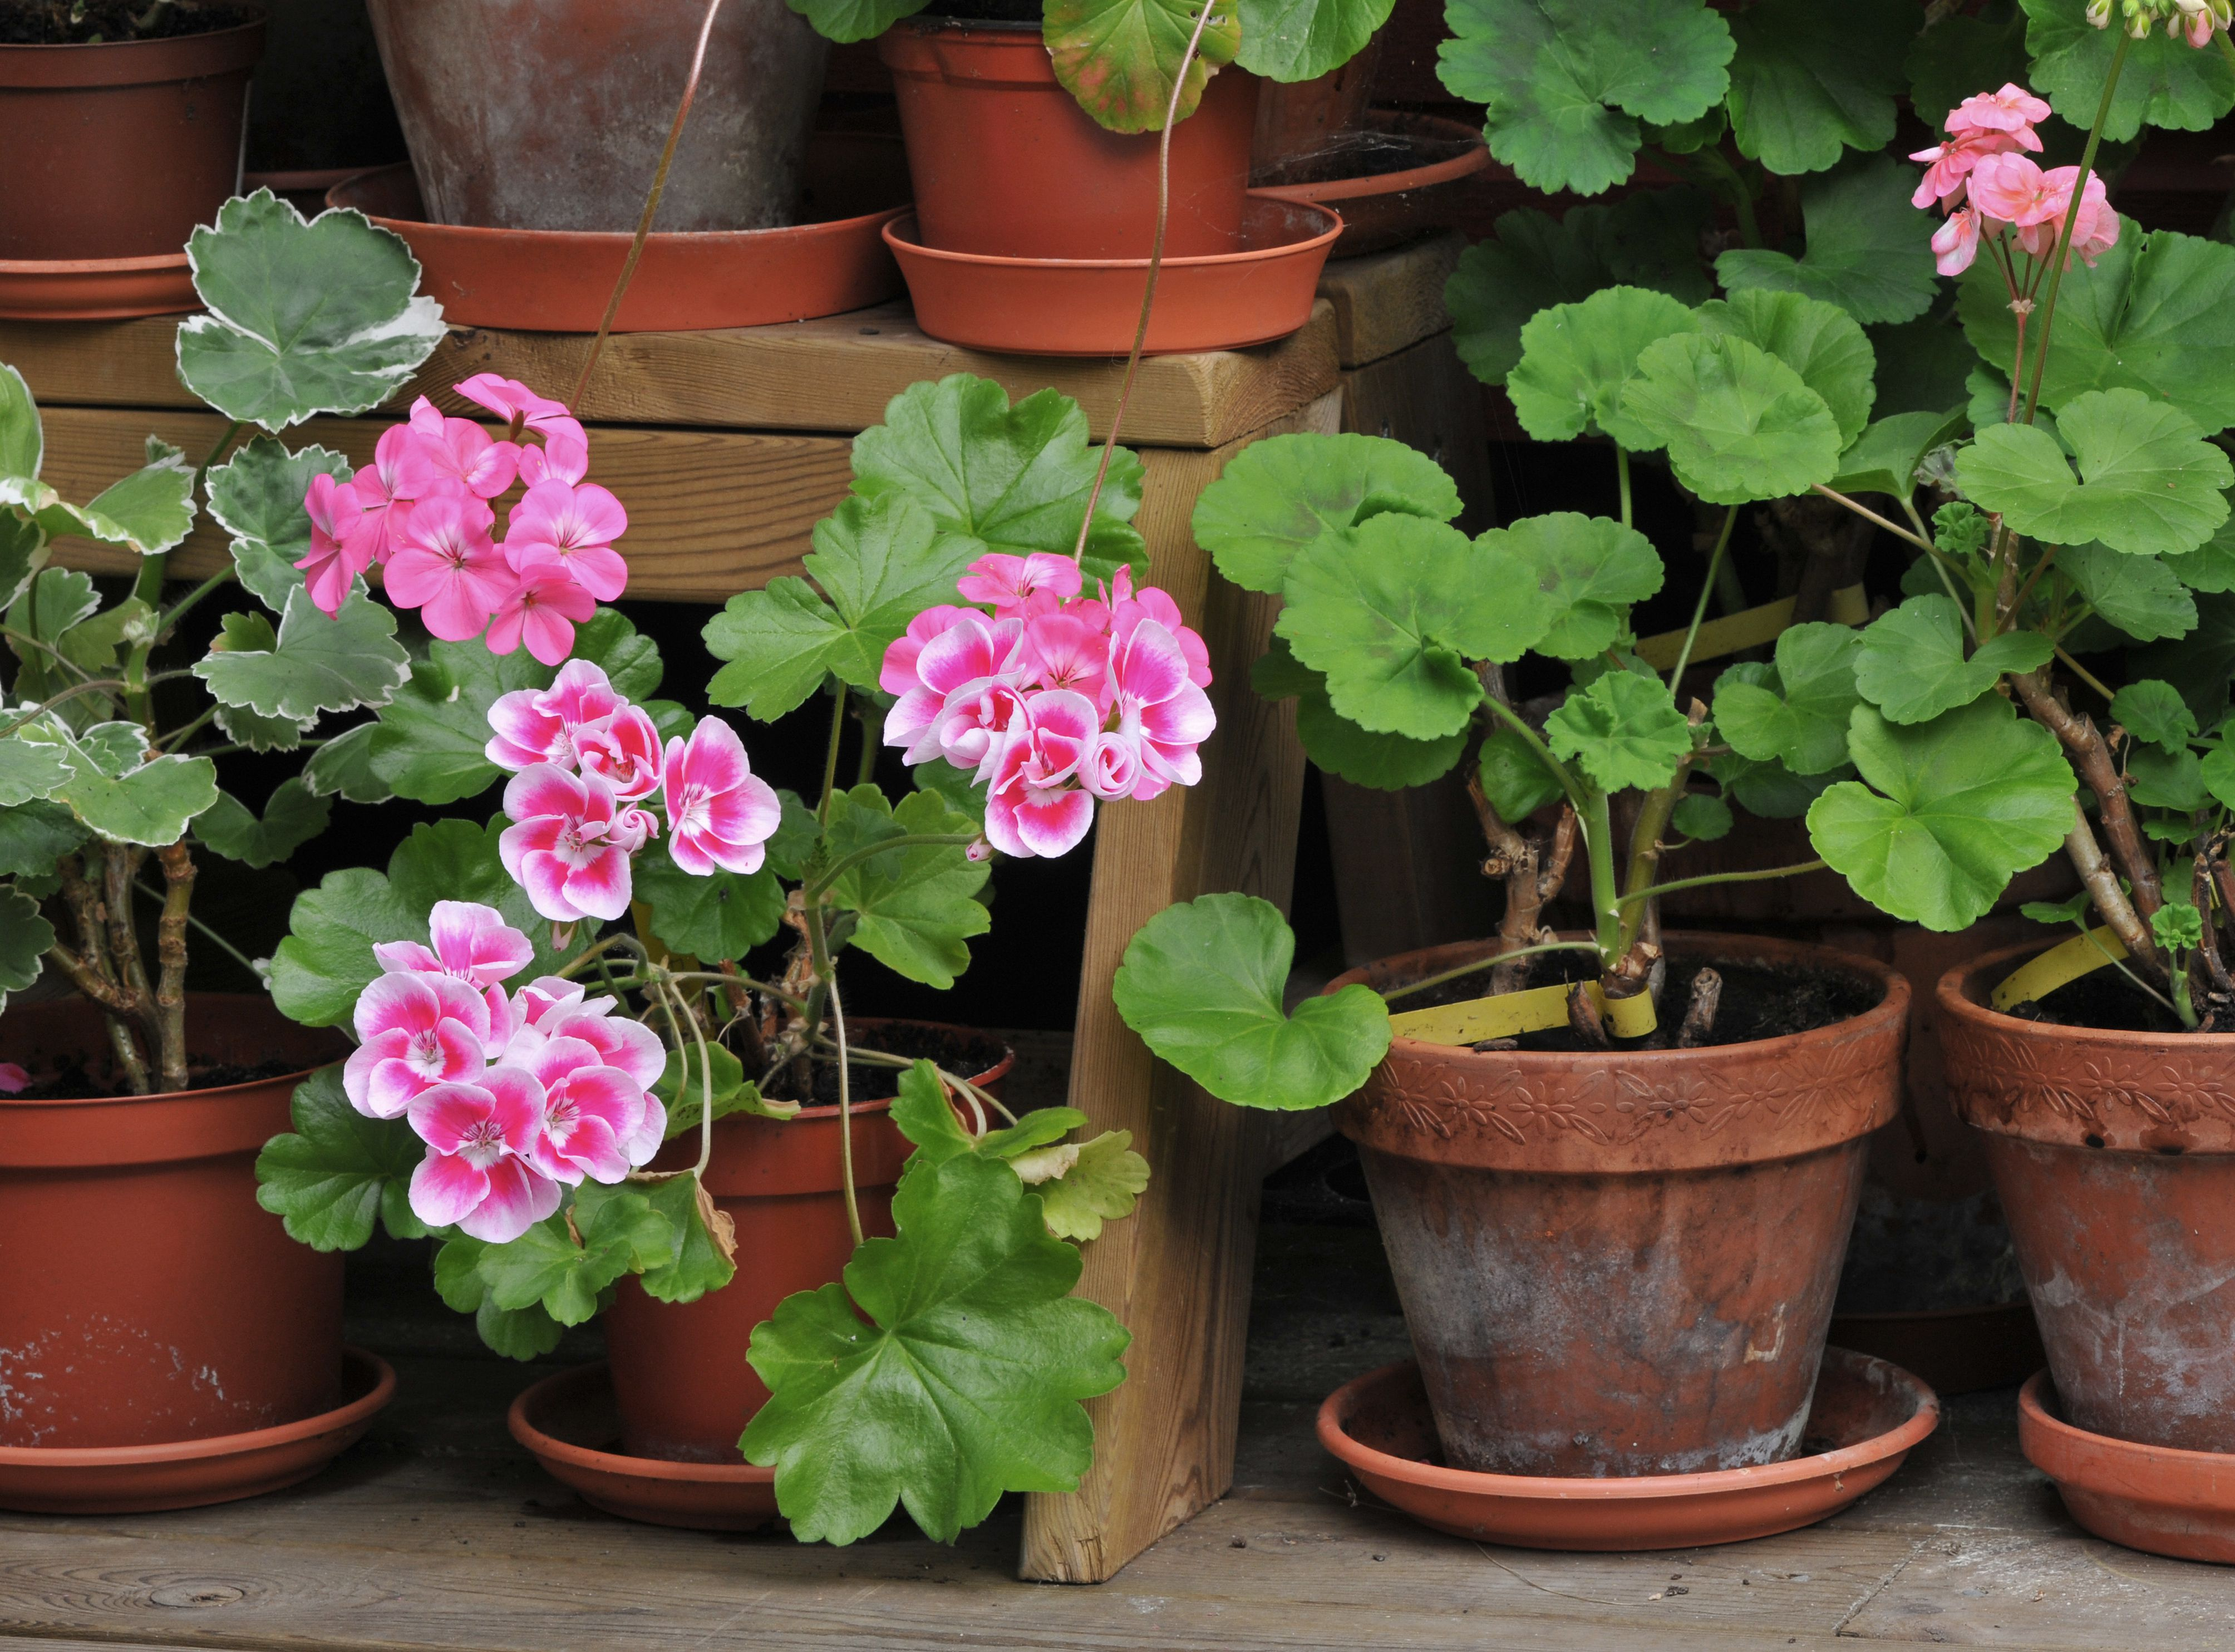 Growing Zonal Geraniums (Pelargonium x hortorum)